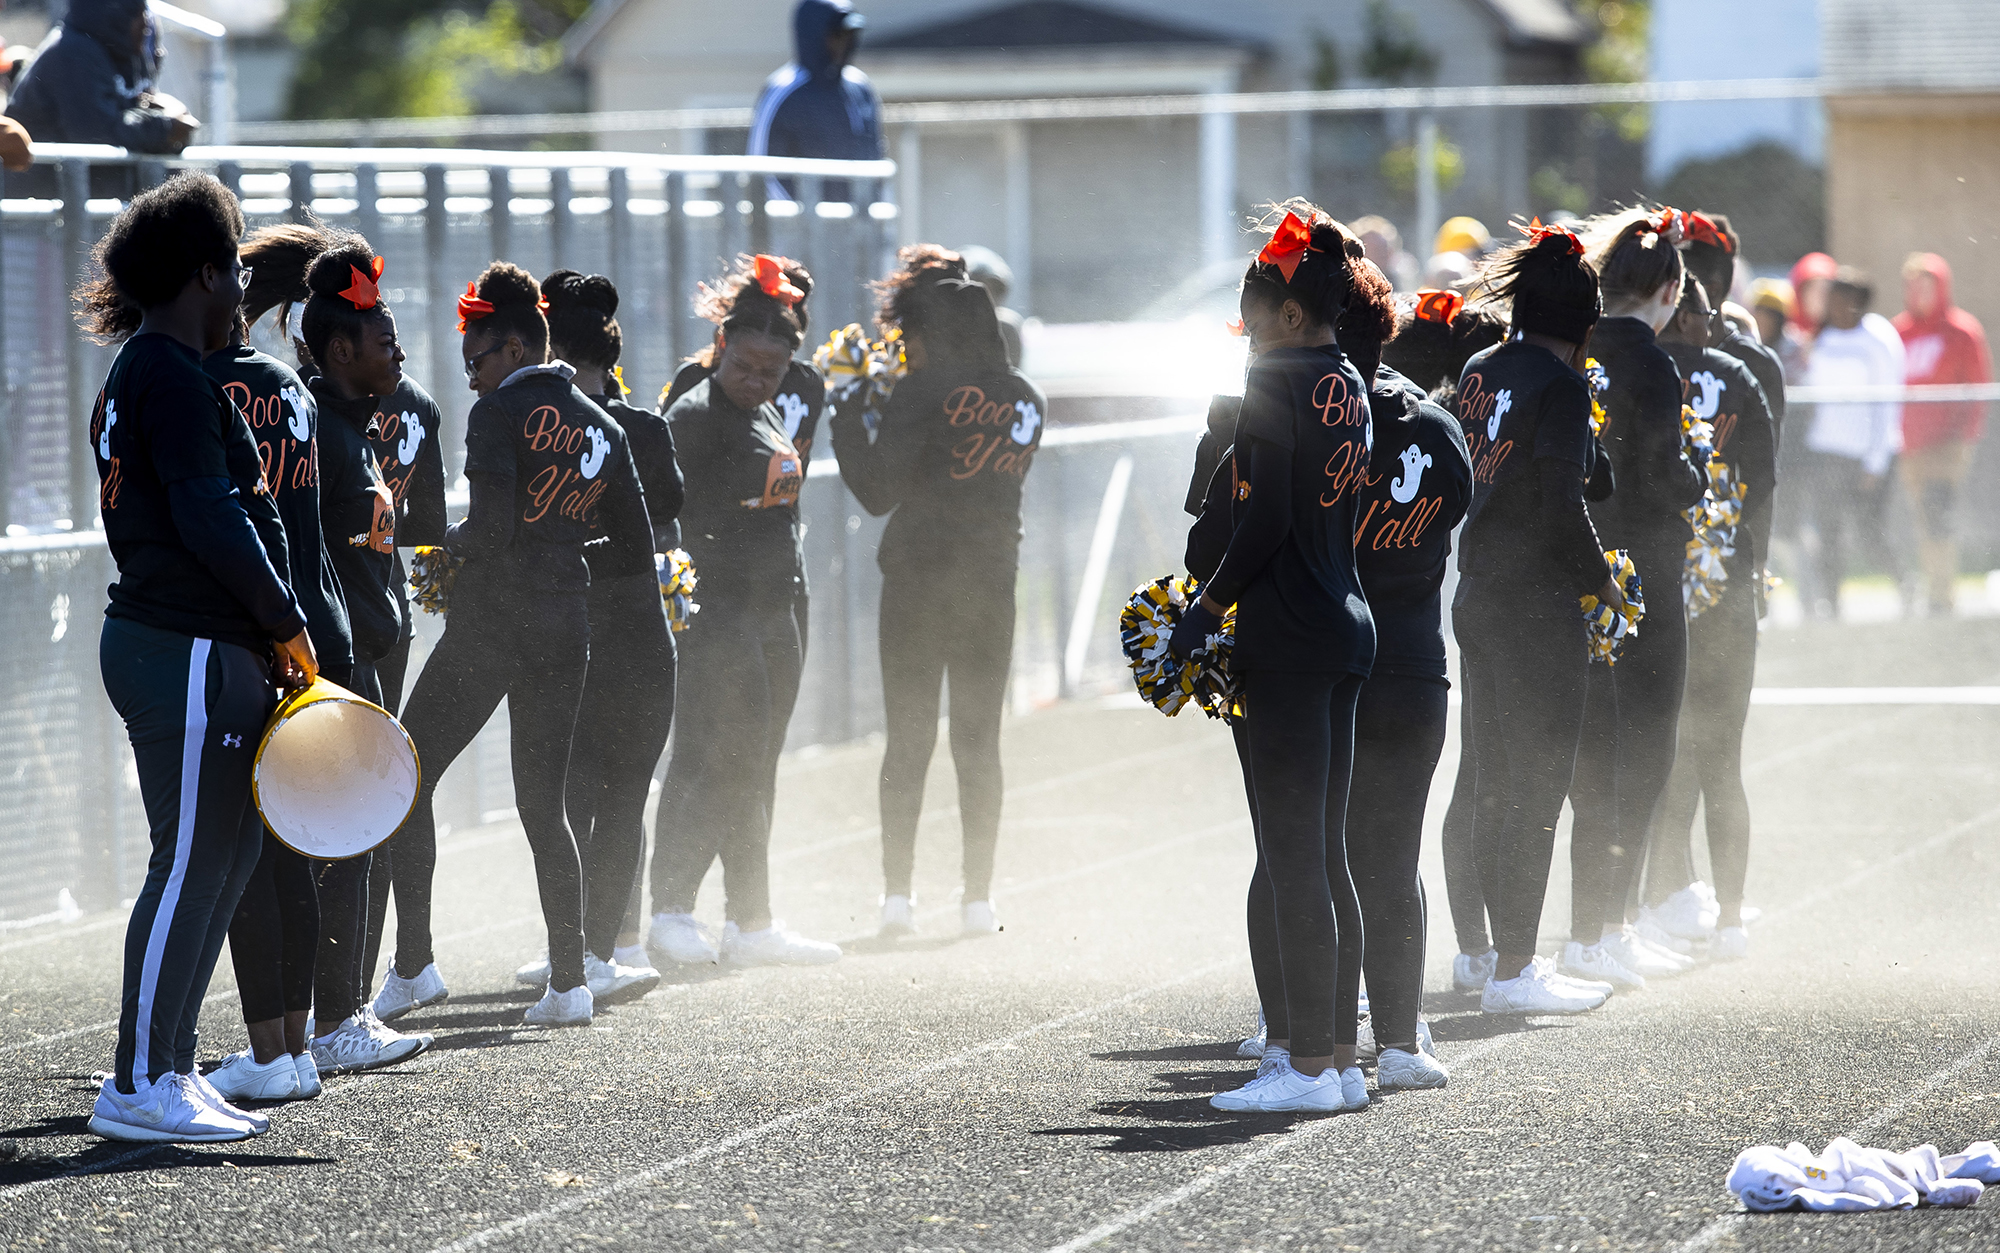 The Southeast High School cheer squad turns their back to the wind when it kicked up dust from the sidelines of the Southeast and Lanphier football game at Memorial Stadium Saturday, Oct. 20, 2018 in Springfield, Ill. [Rich Saal/The State Journal-Register]